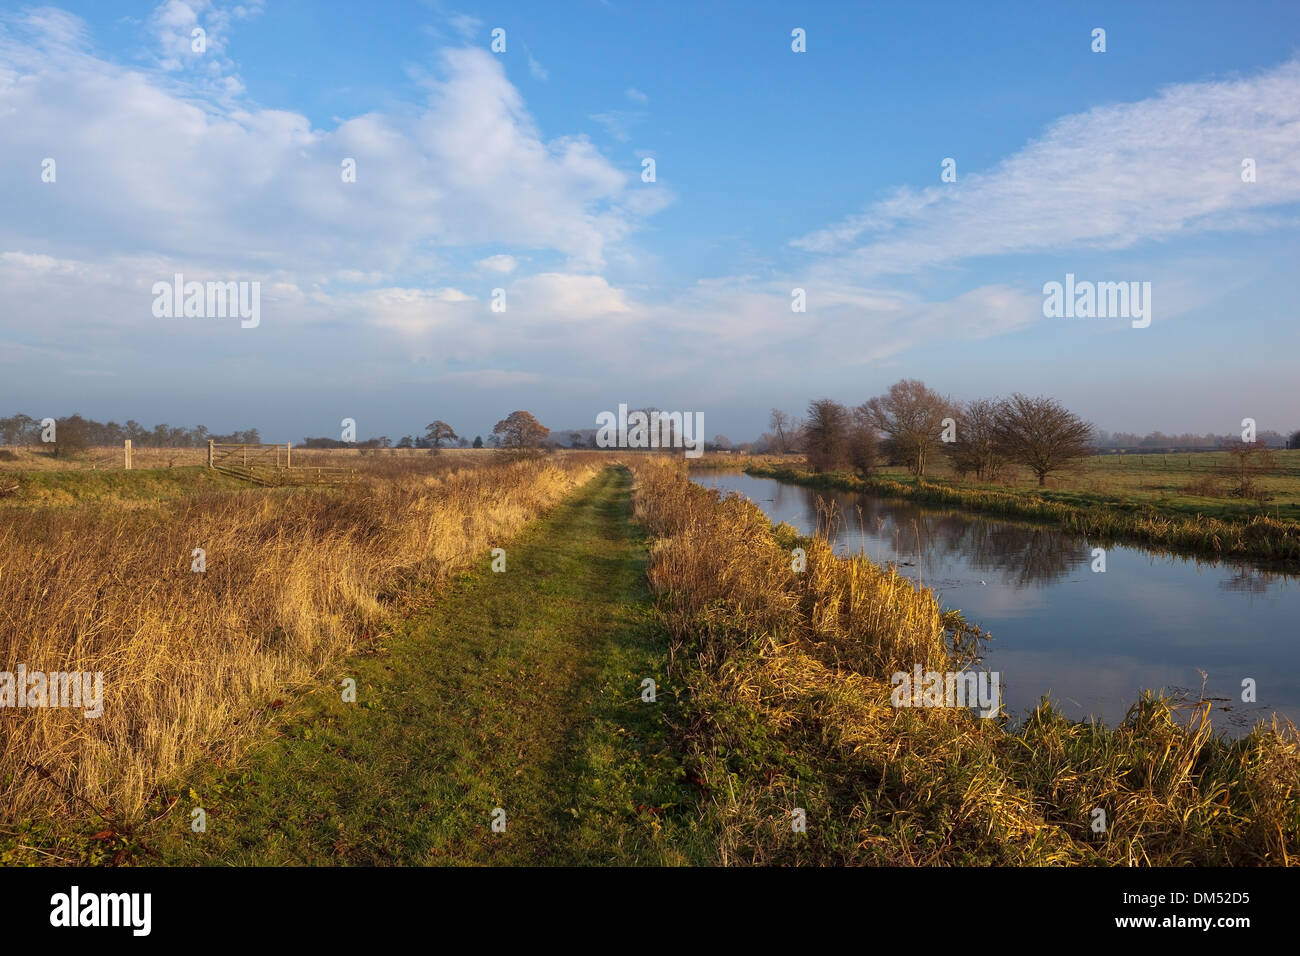 A scenic canal towpath in winter with dry grasses, water and hedgerows under a blue cloudy sky - Stock Image